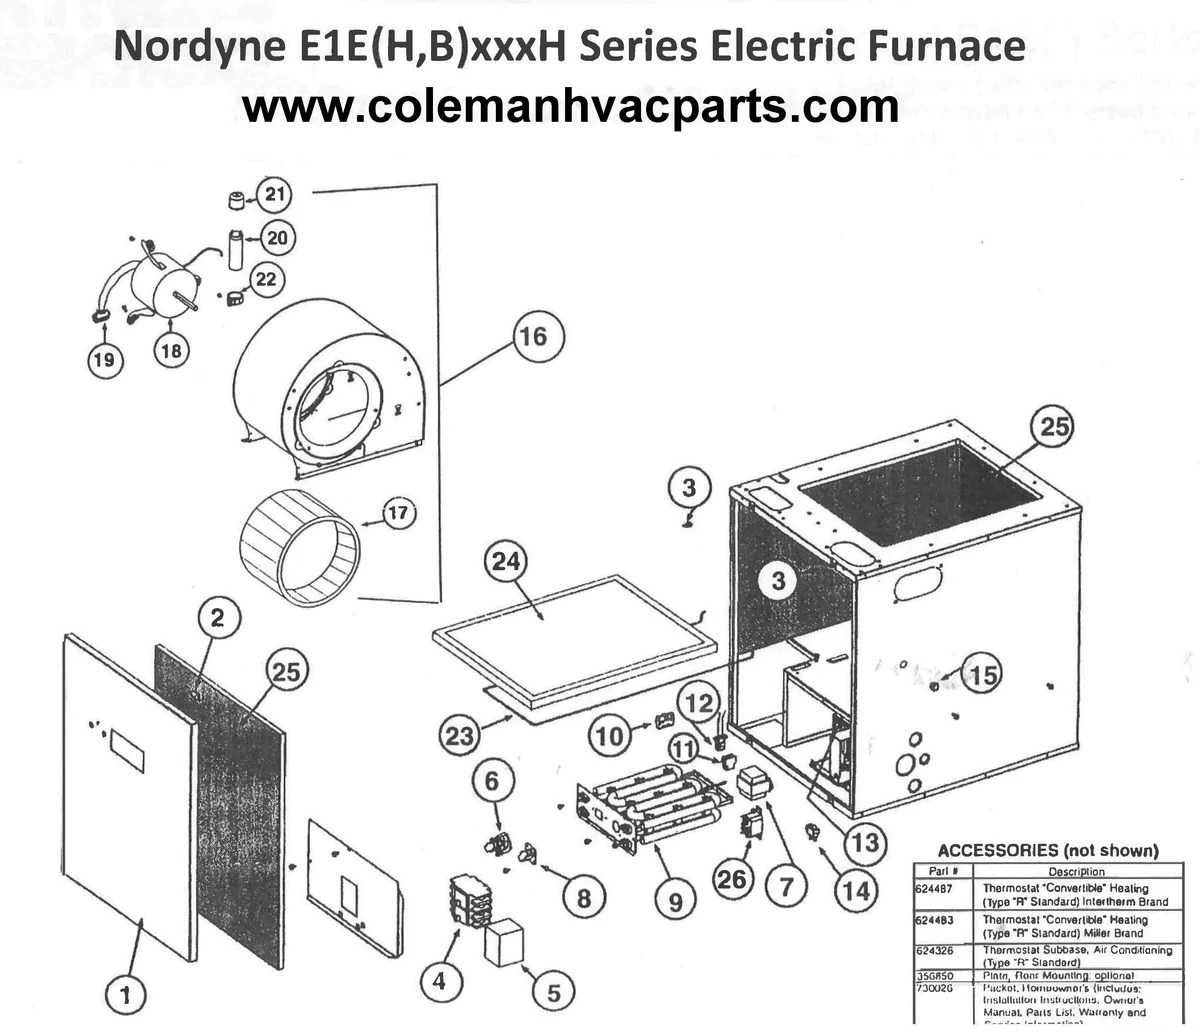 E1EH017H Nordyne Electric Furnace Parts – HVACpartstore